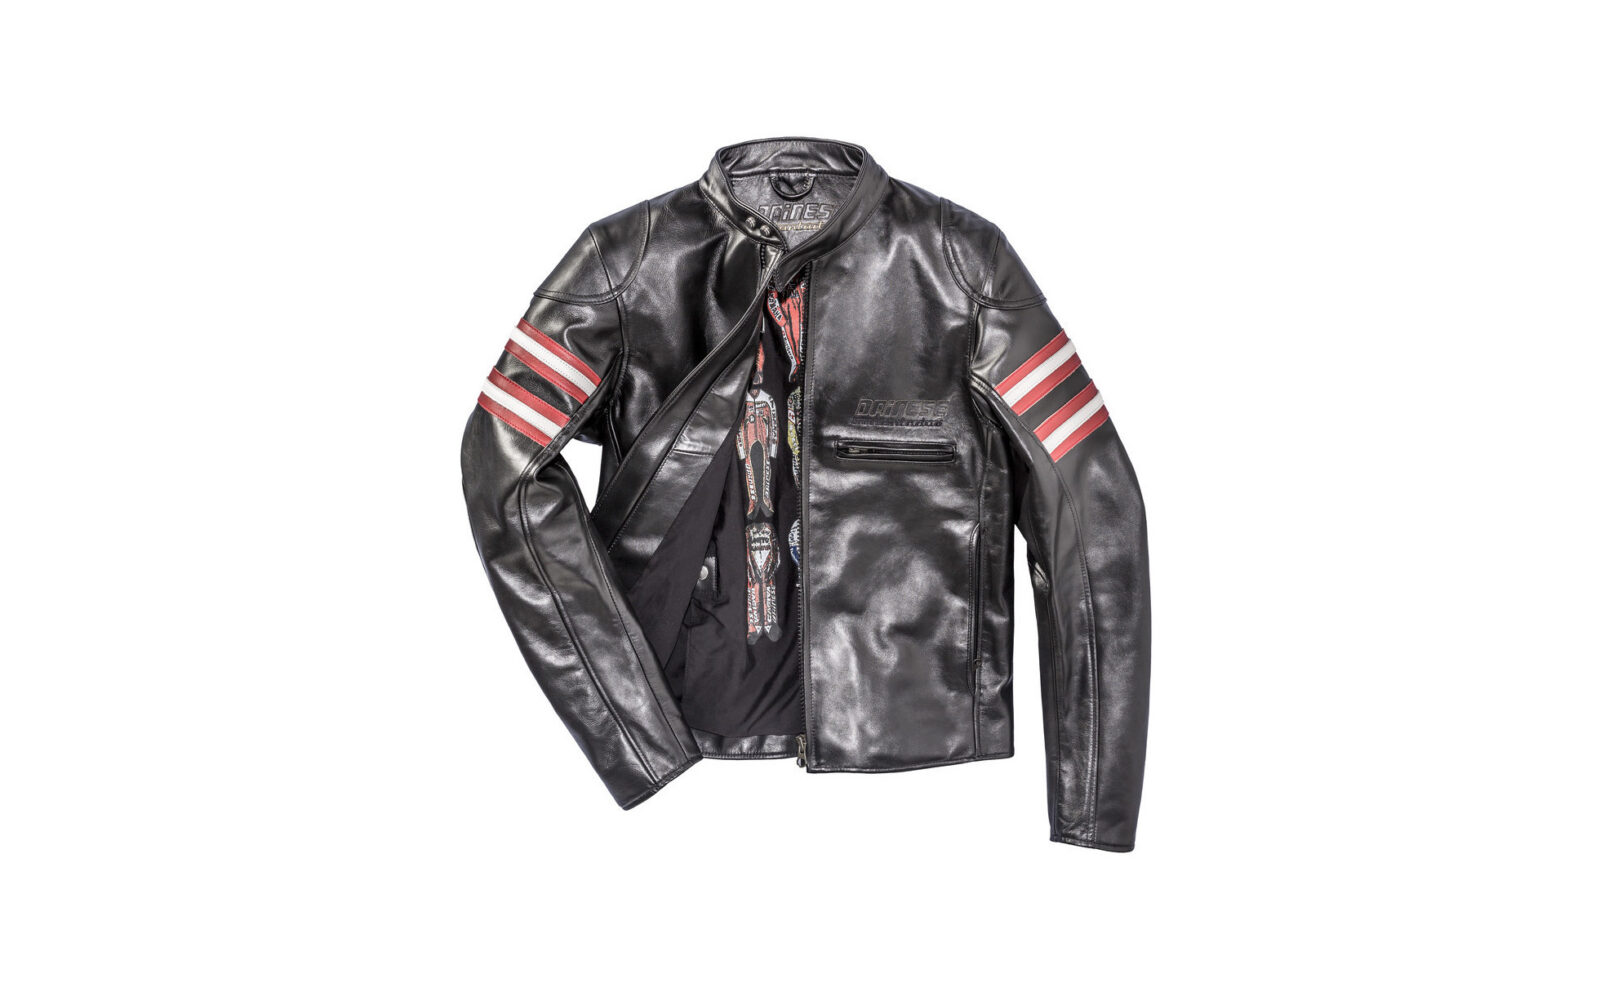 Dainese Rapida72 Leather Motorcycle Jacket 1600x996 - Dainese Rapida72 Leather Moto Jacket